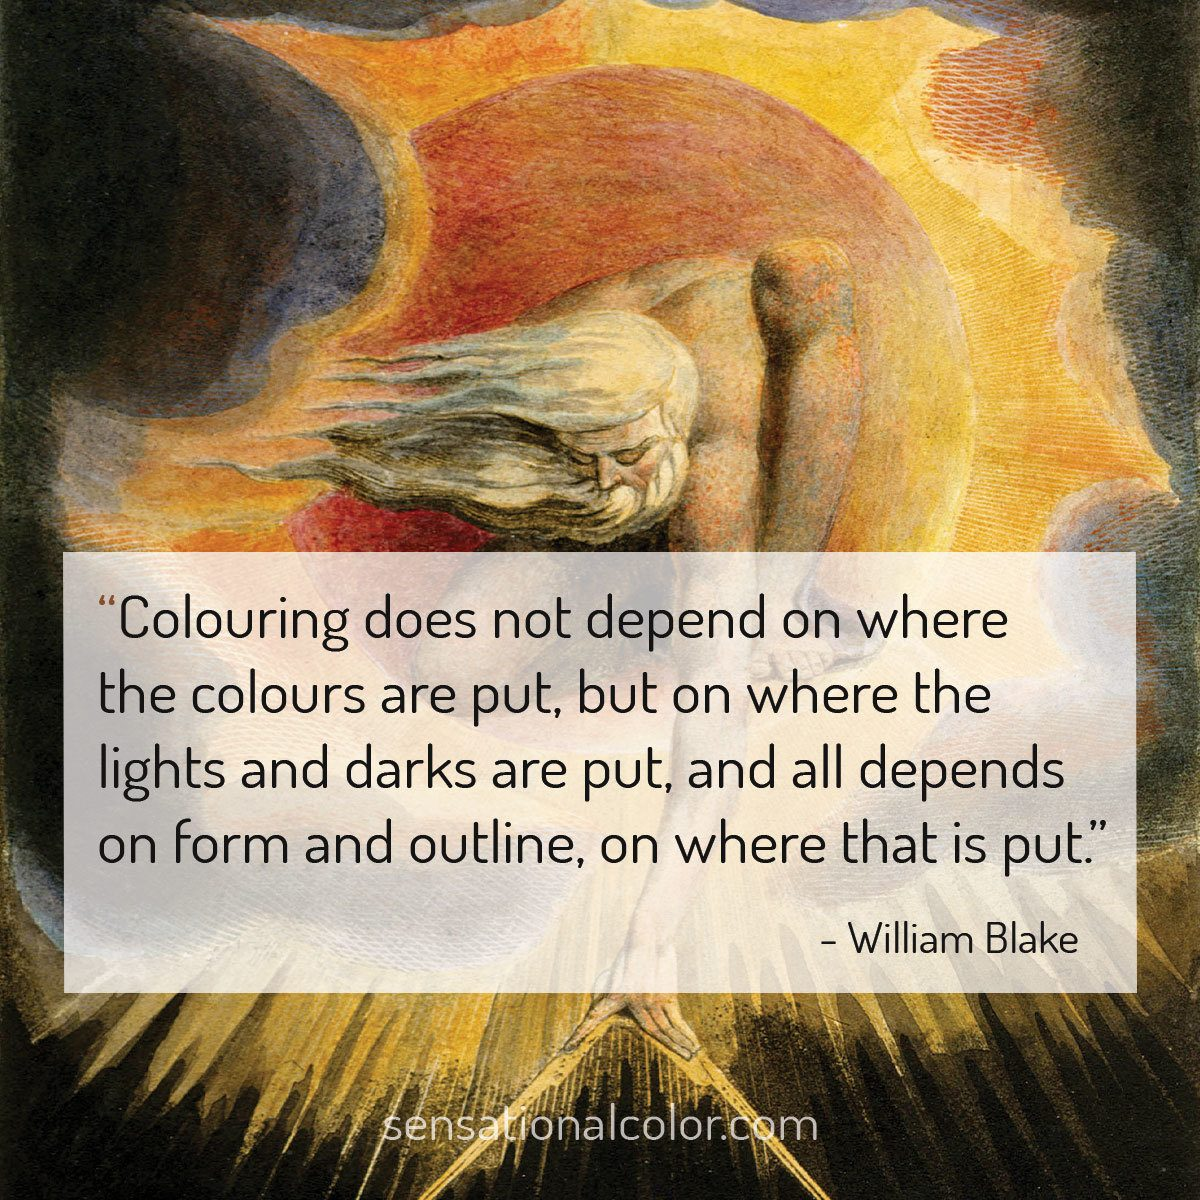 """Colouring does not depend on where the colours are put, but on where the lights and darks are put, and all depends on form and outline, on where that is put."" - William Blake"